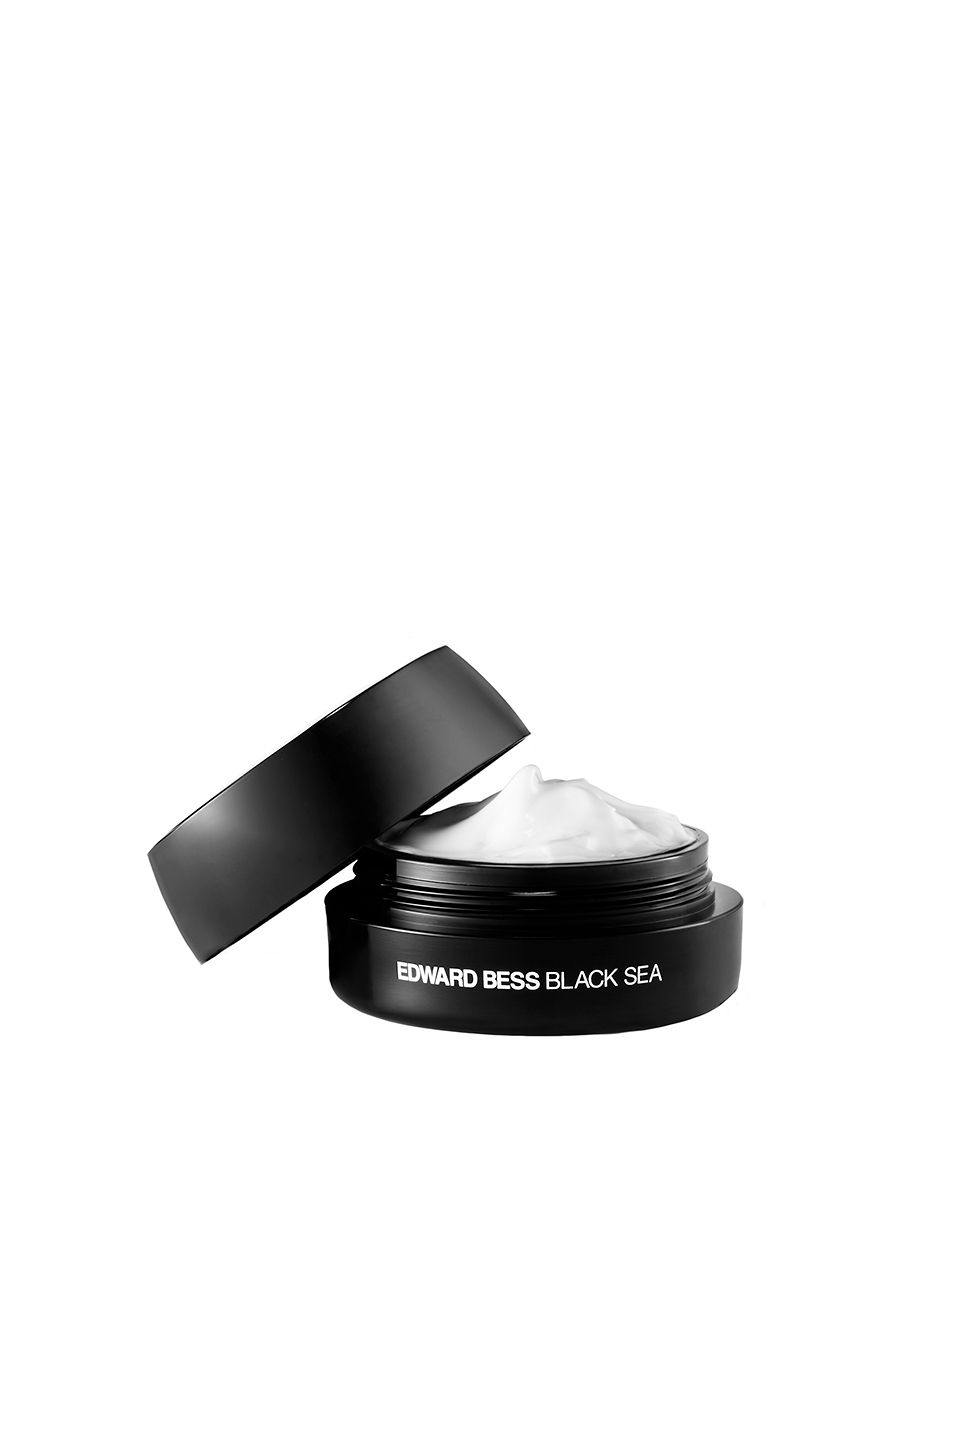 Edward Bess Black Sea Essential Eye Cream in